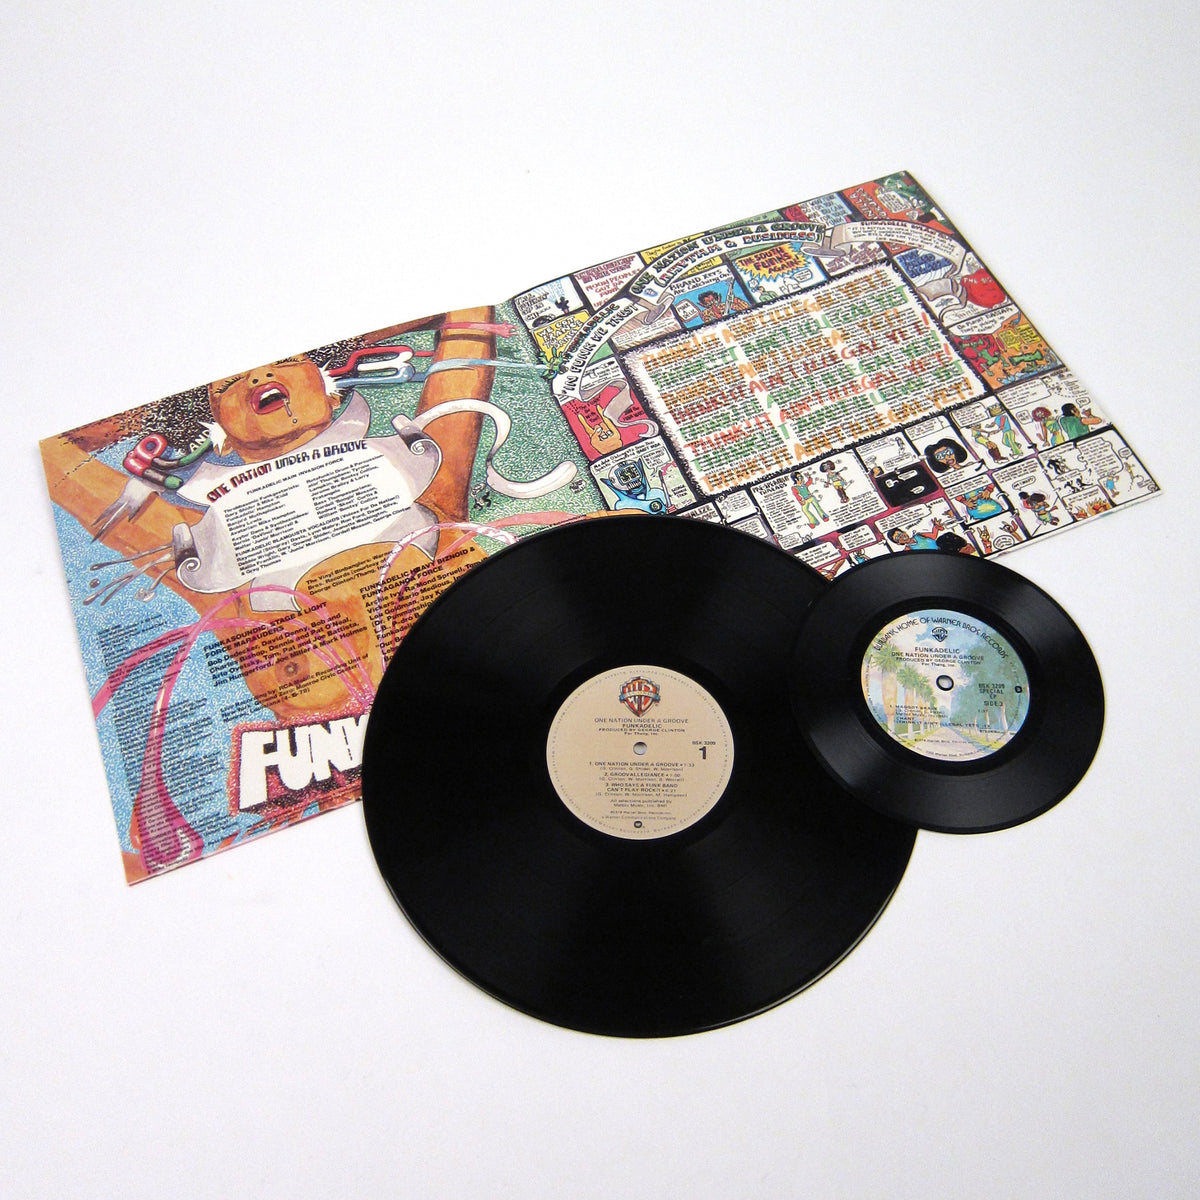 "Funkadelic: One Nation Under A Groove Vinyl LP+7"" - 2005 WB Pressing"